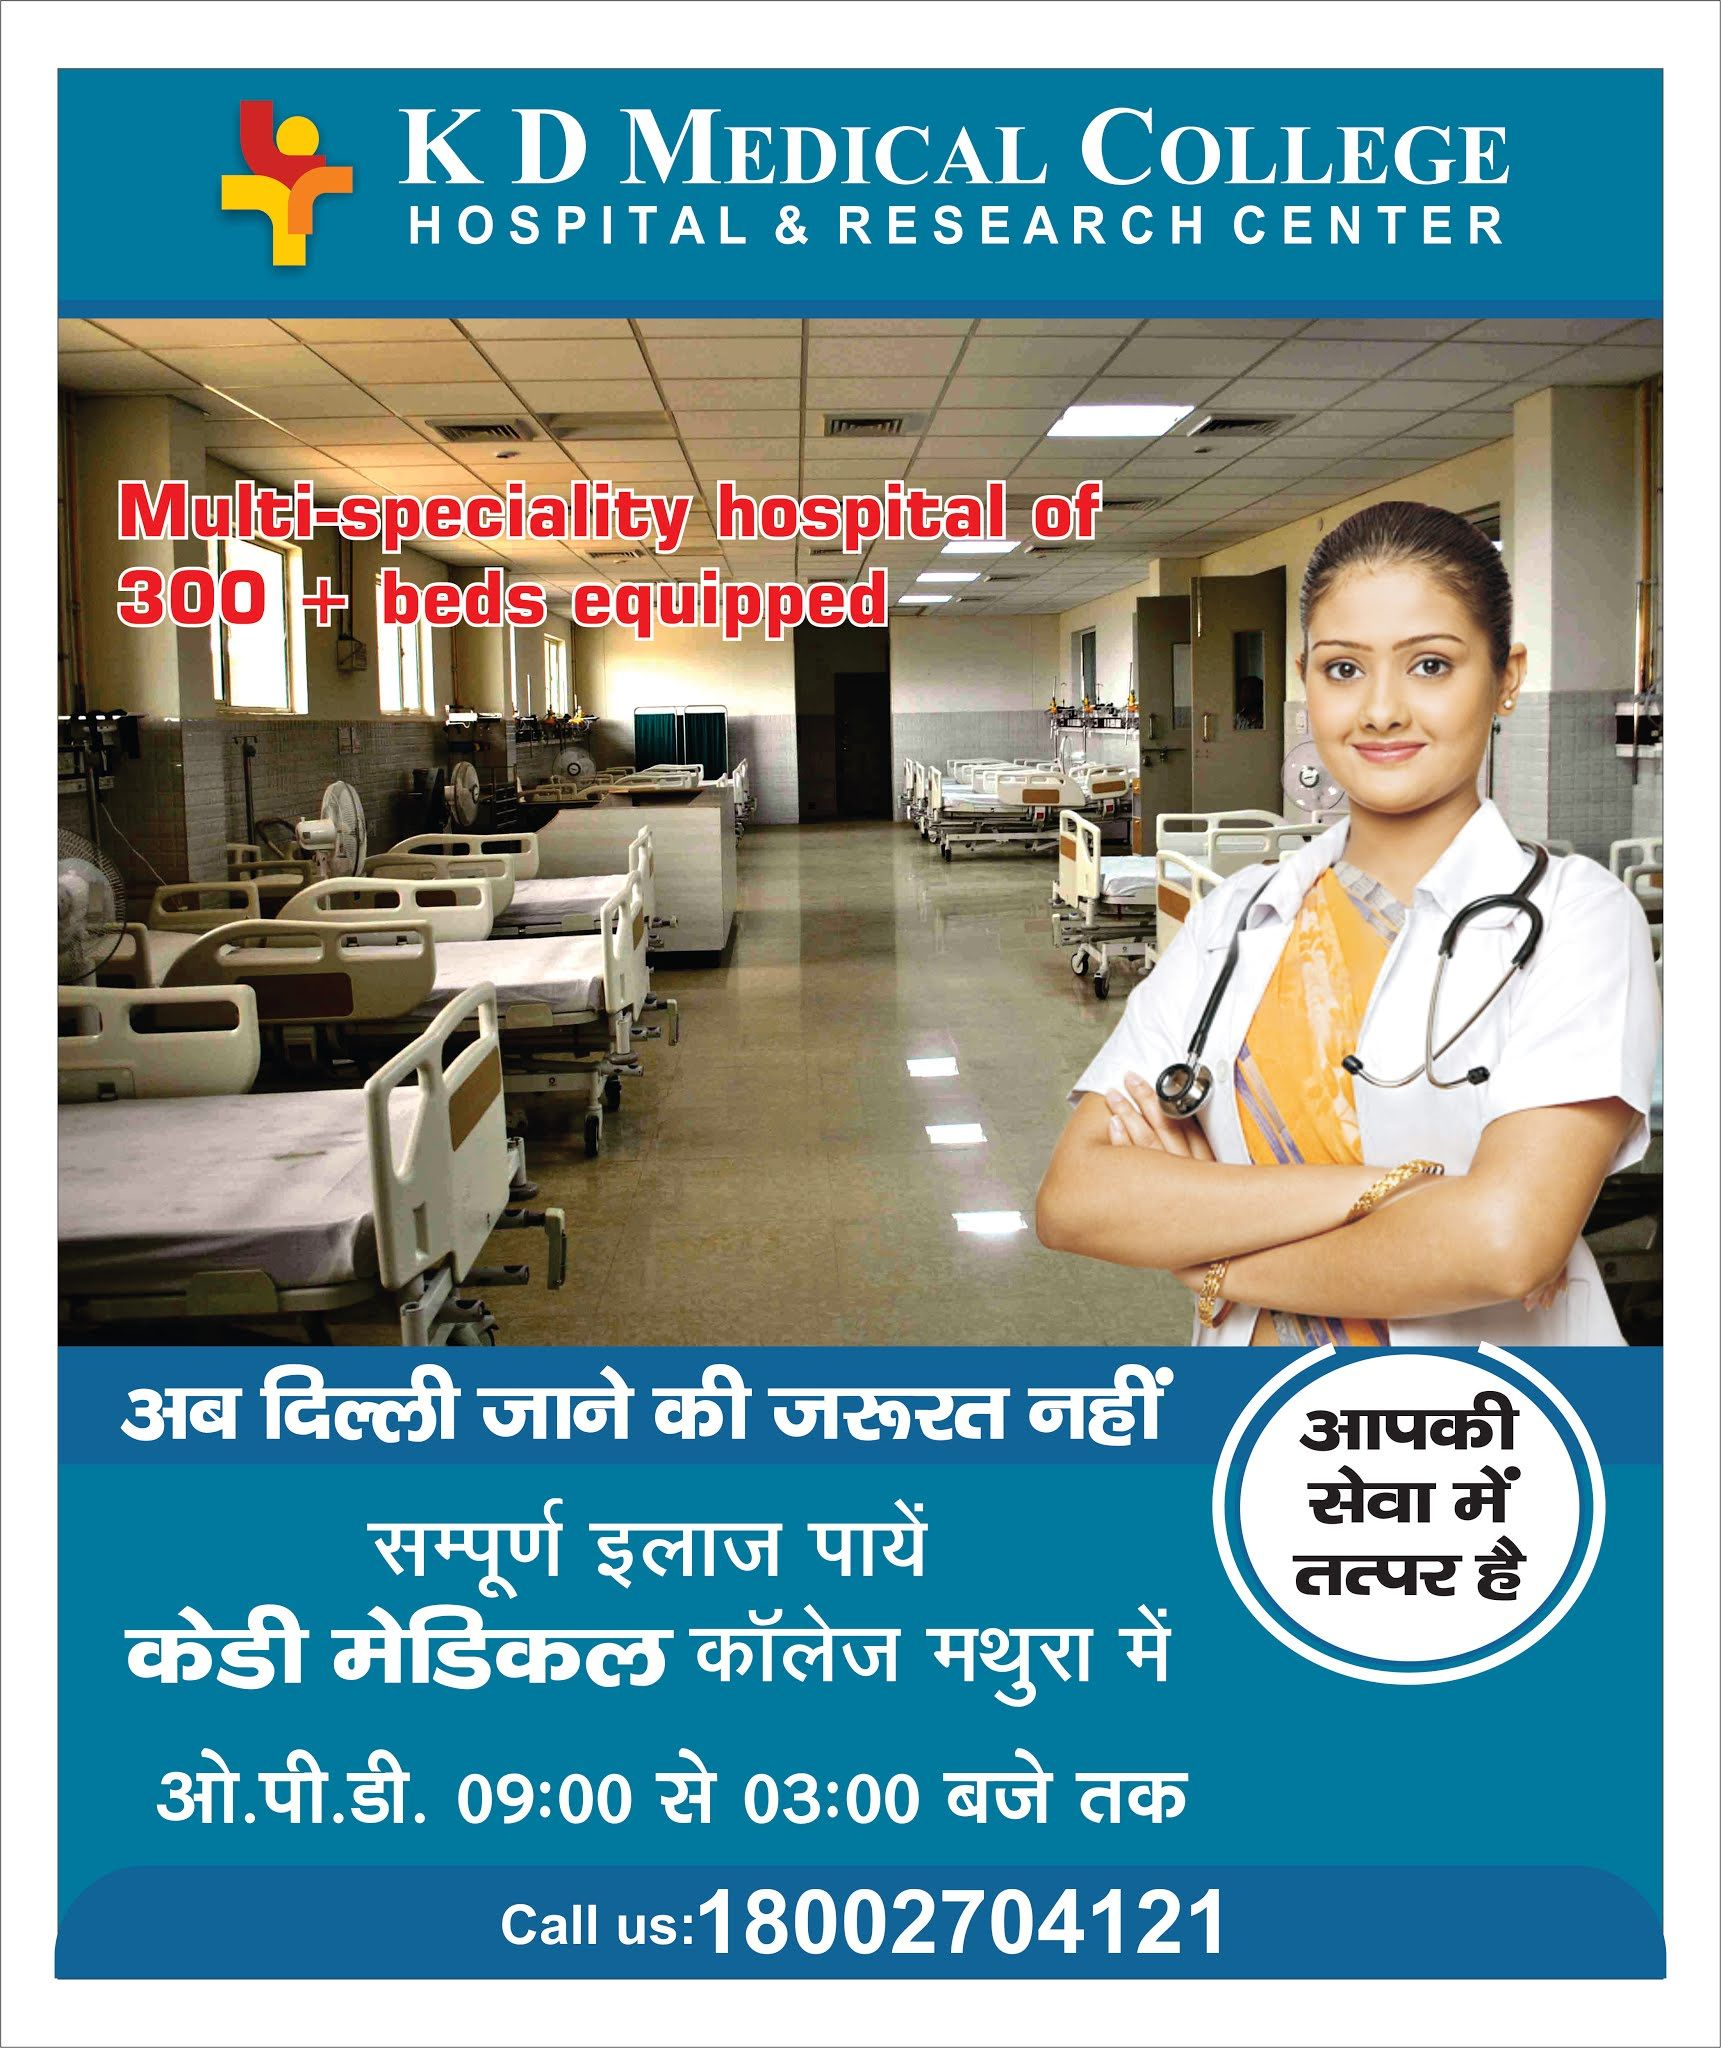 This Medical Hospital Along With The Multi Speciality Hospital